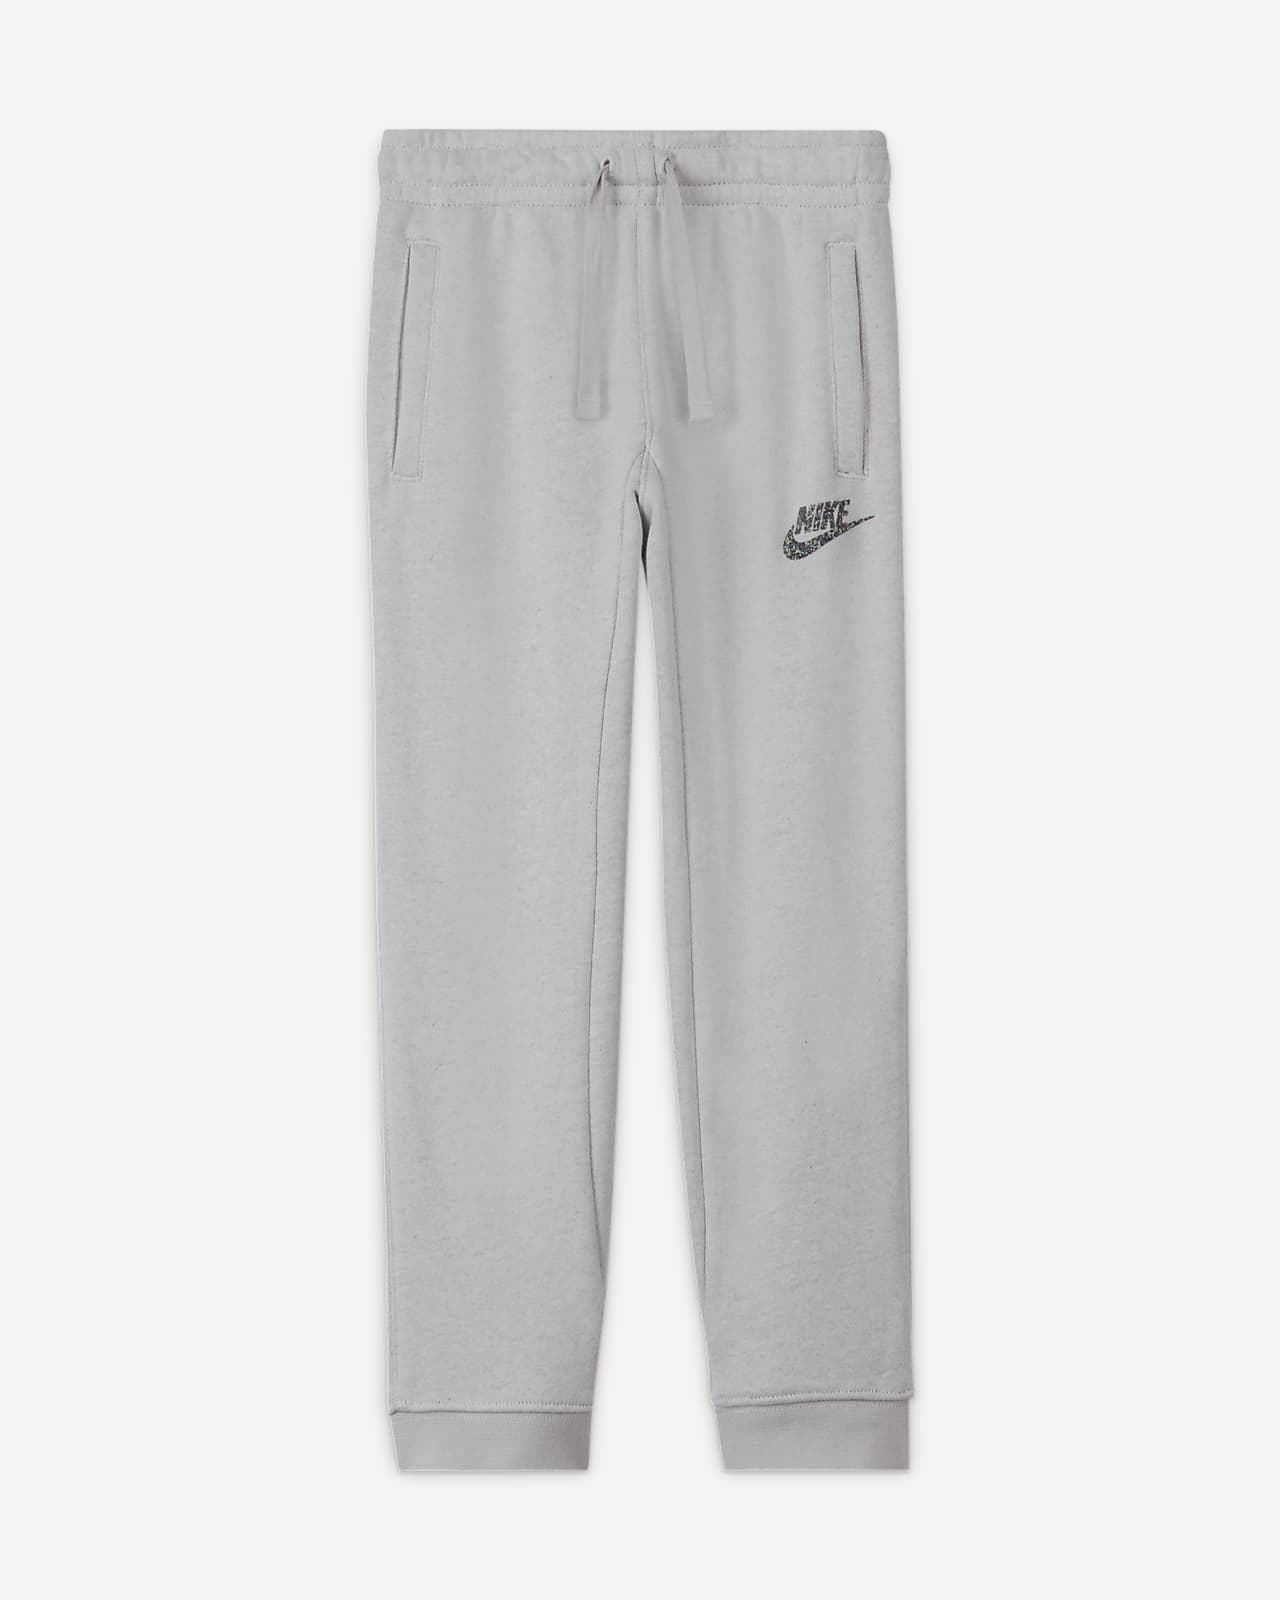 Nike Younger Kids' Trousers